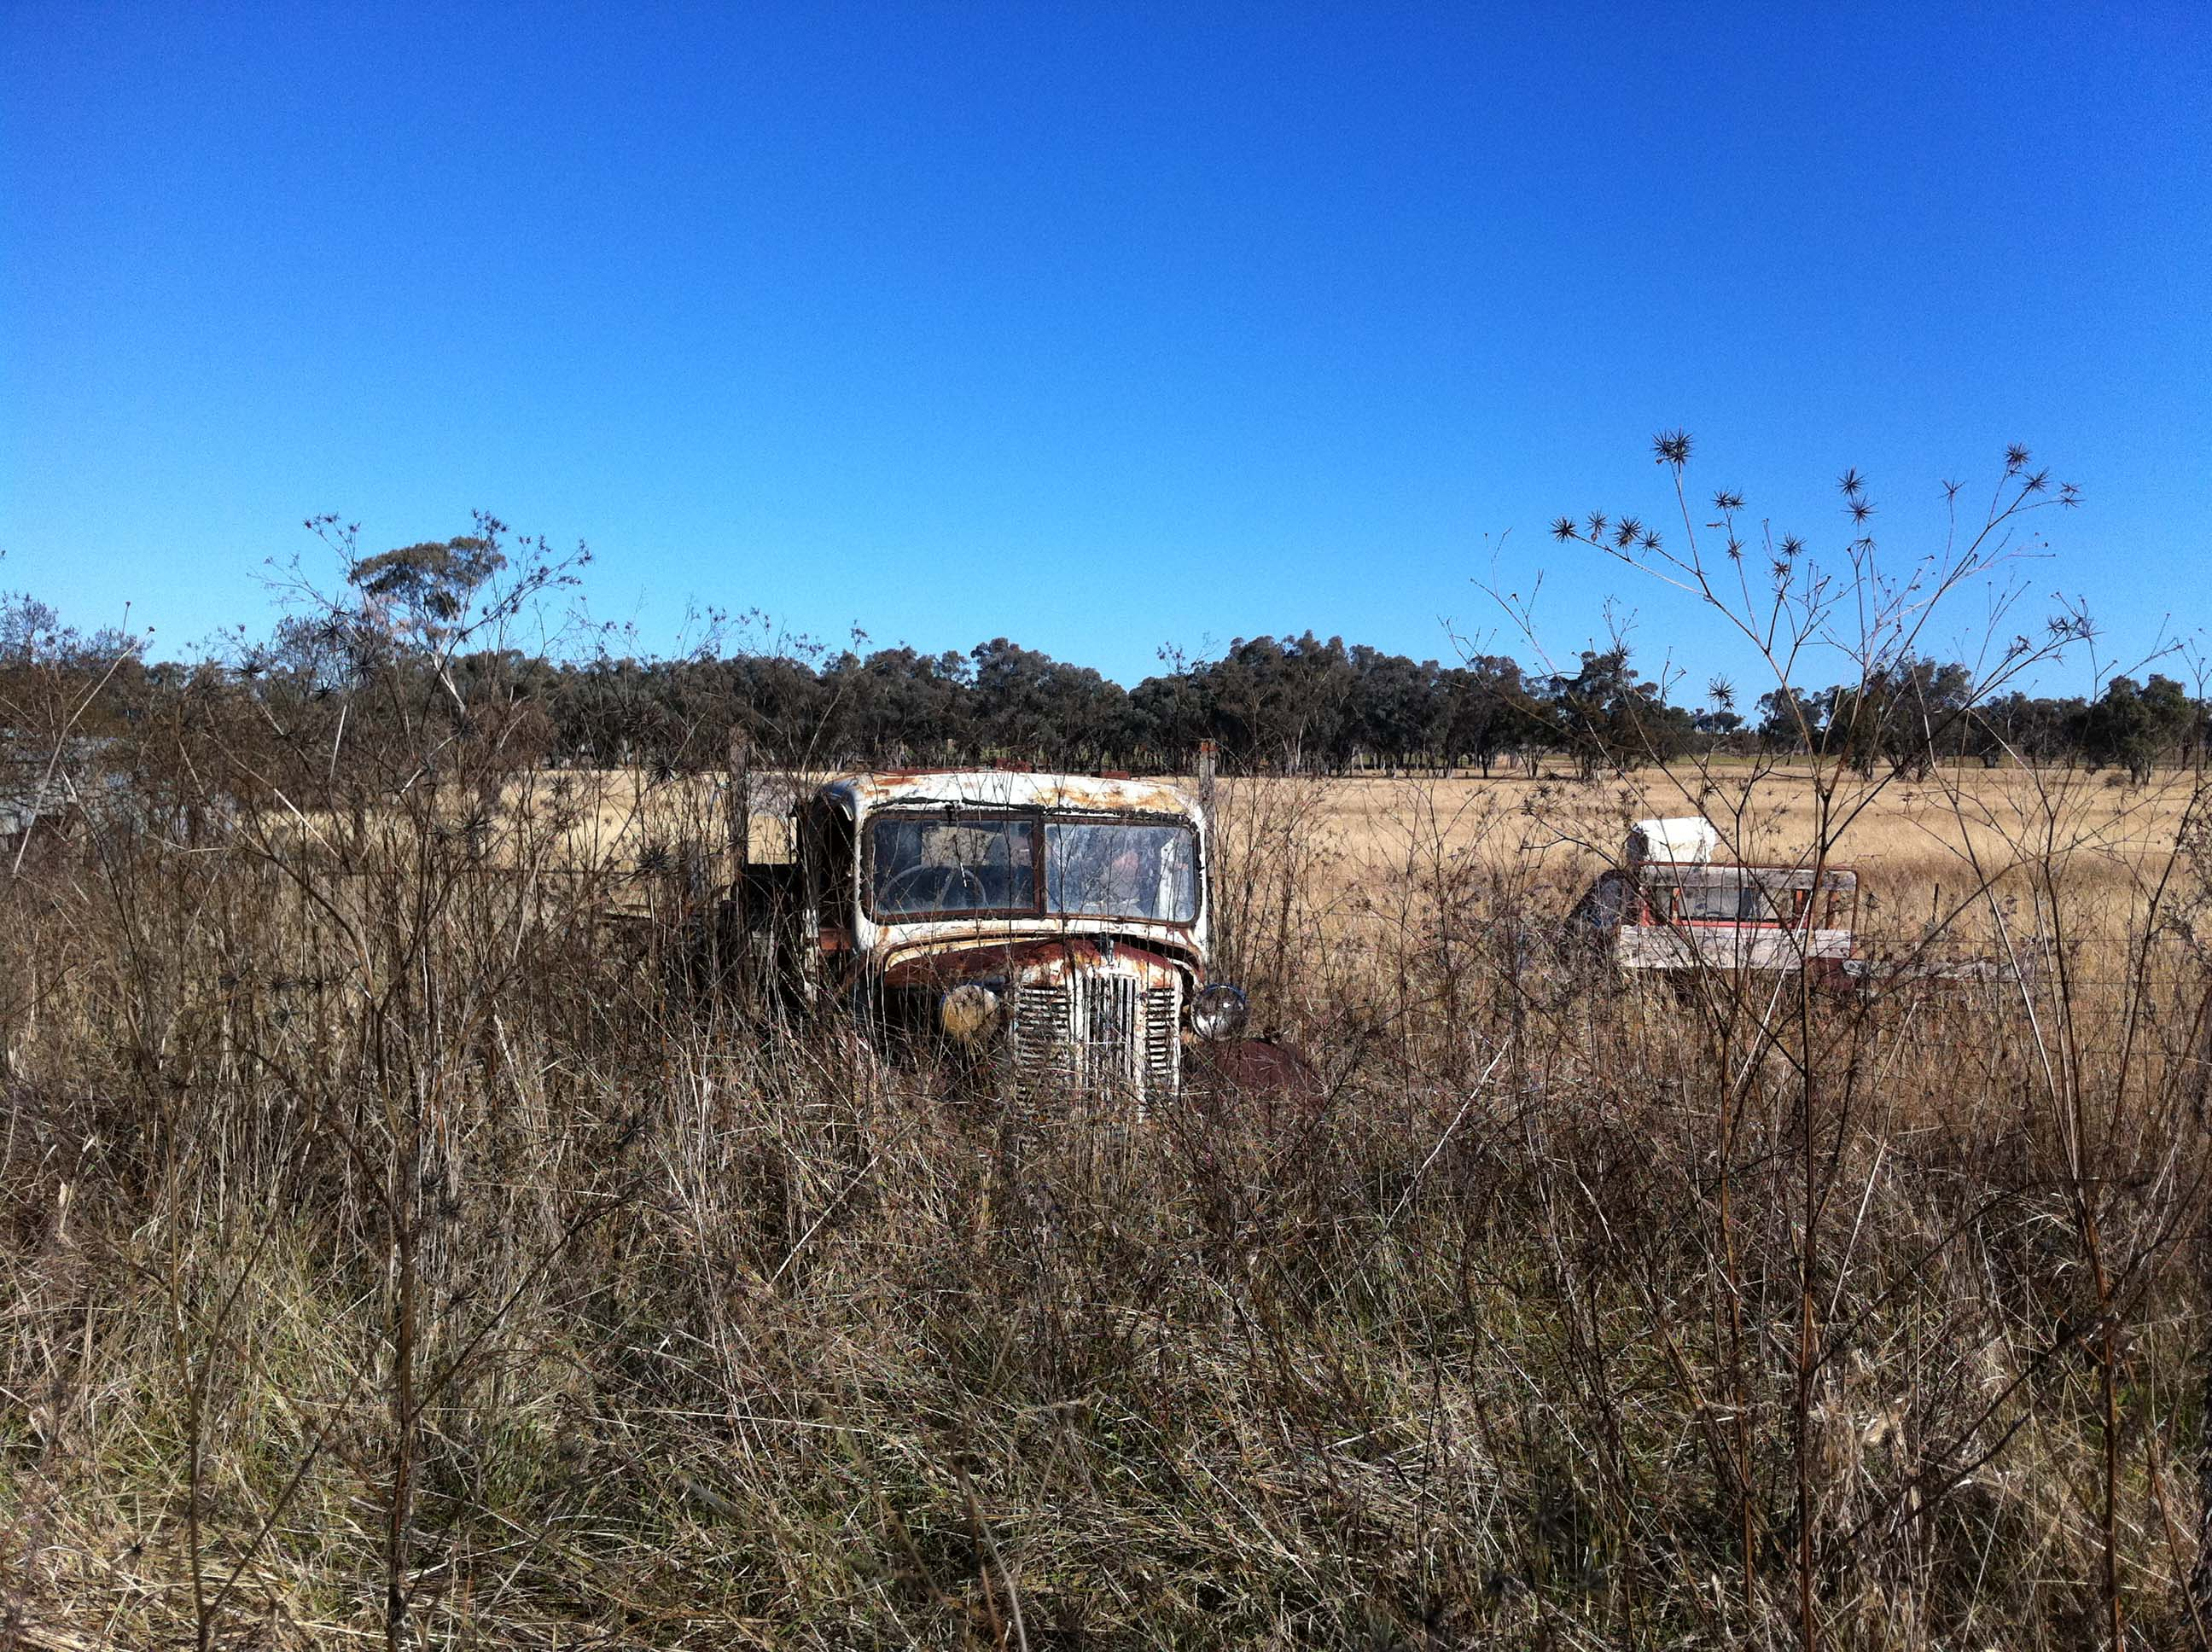 The old Bedford Truck at 'Raleigh' Oakwood.